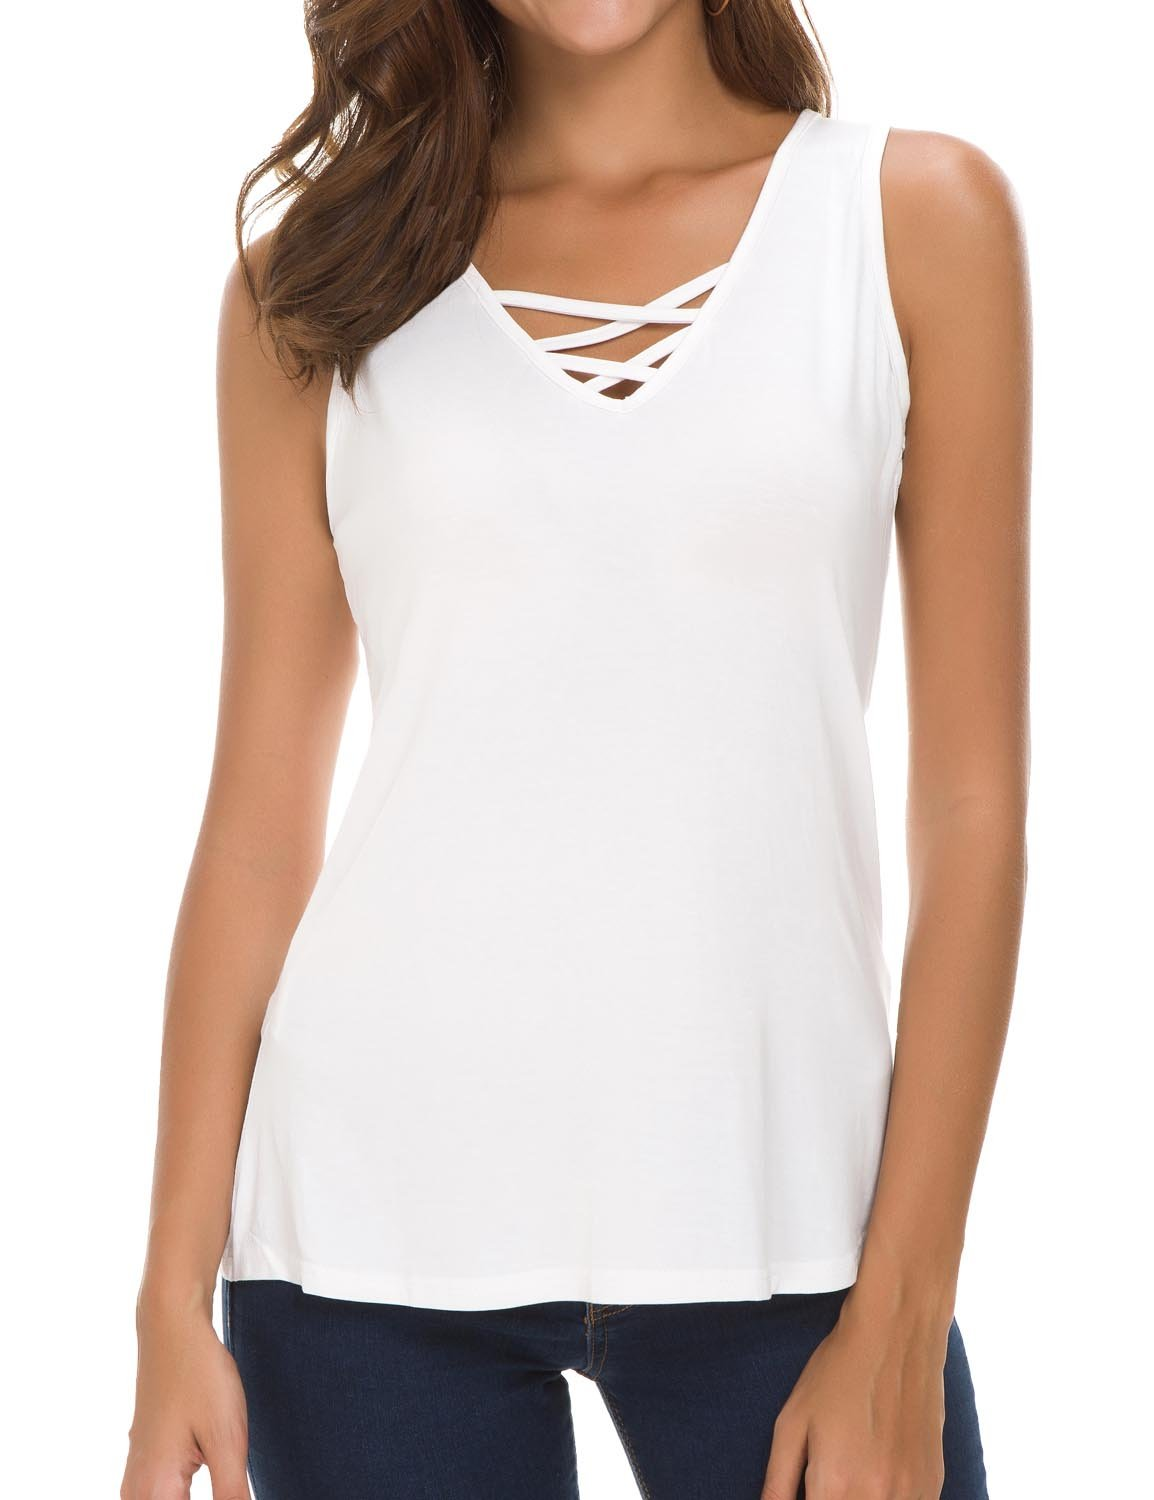 Sechico Women's Criss Cross Casual Cami Shirt Sleeveless Tank Top Basic Lace up Blouse L White